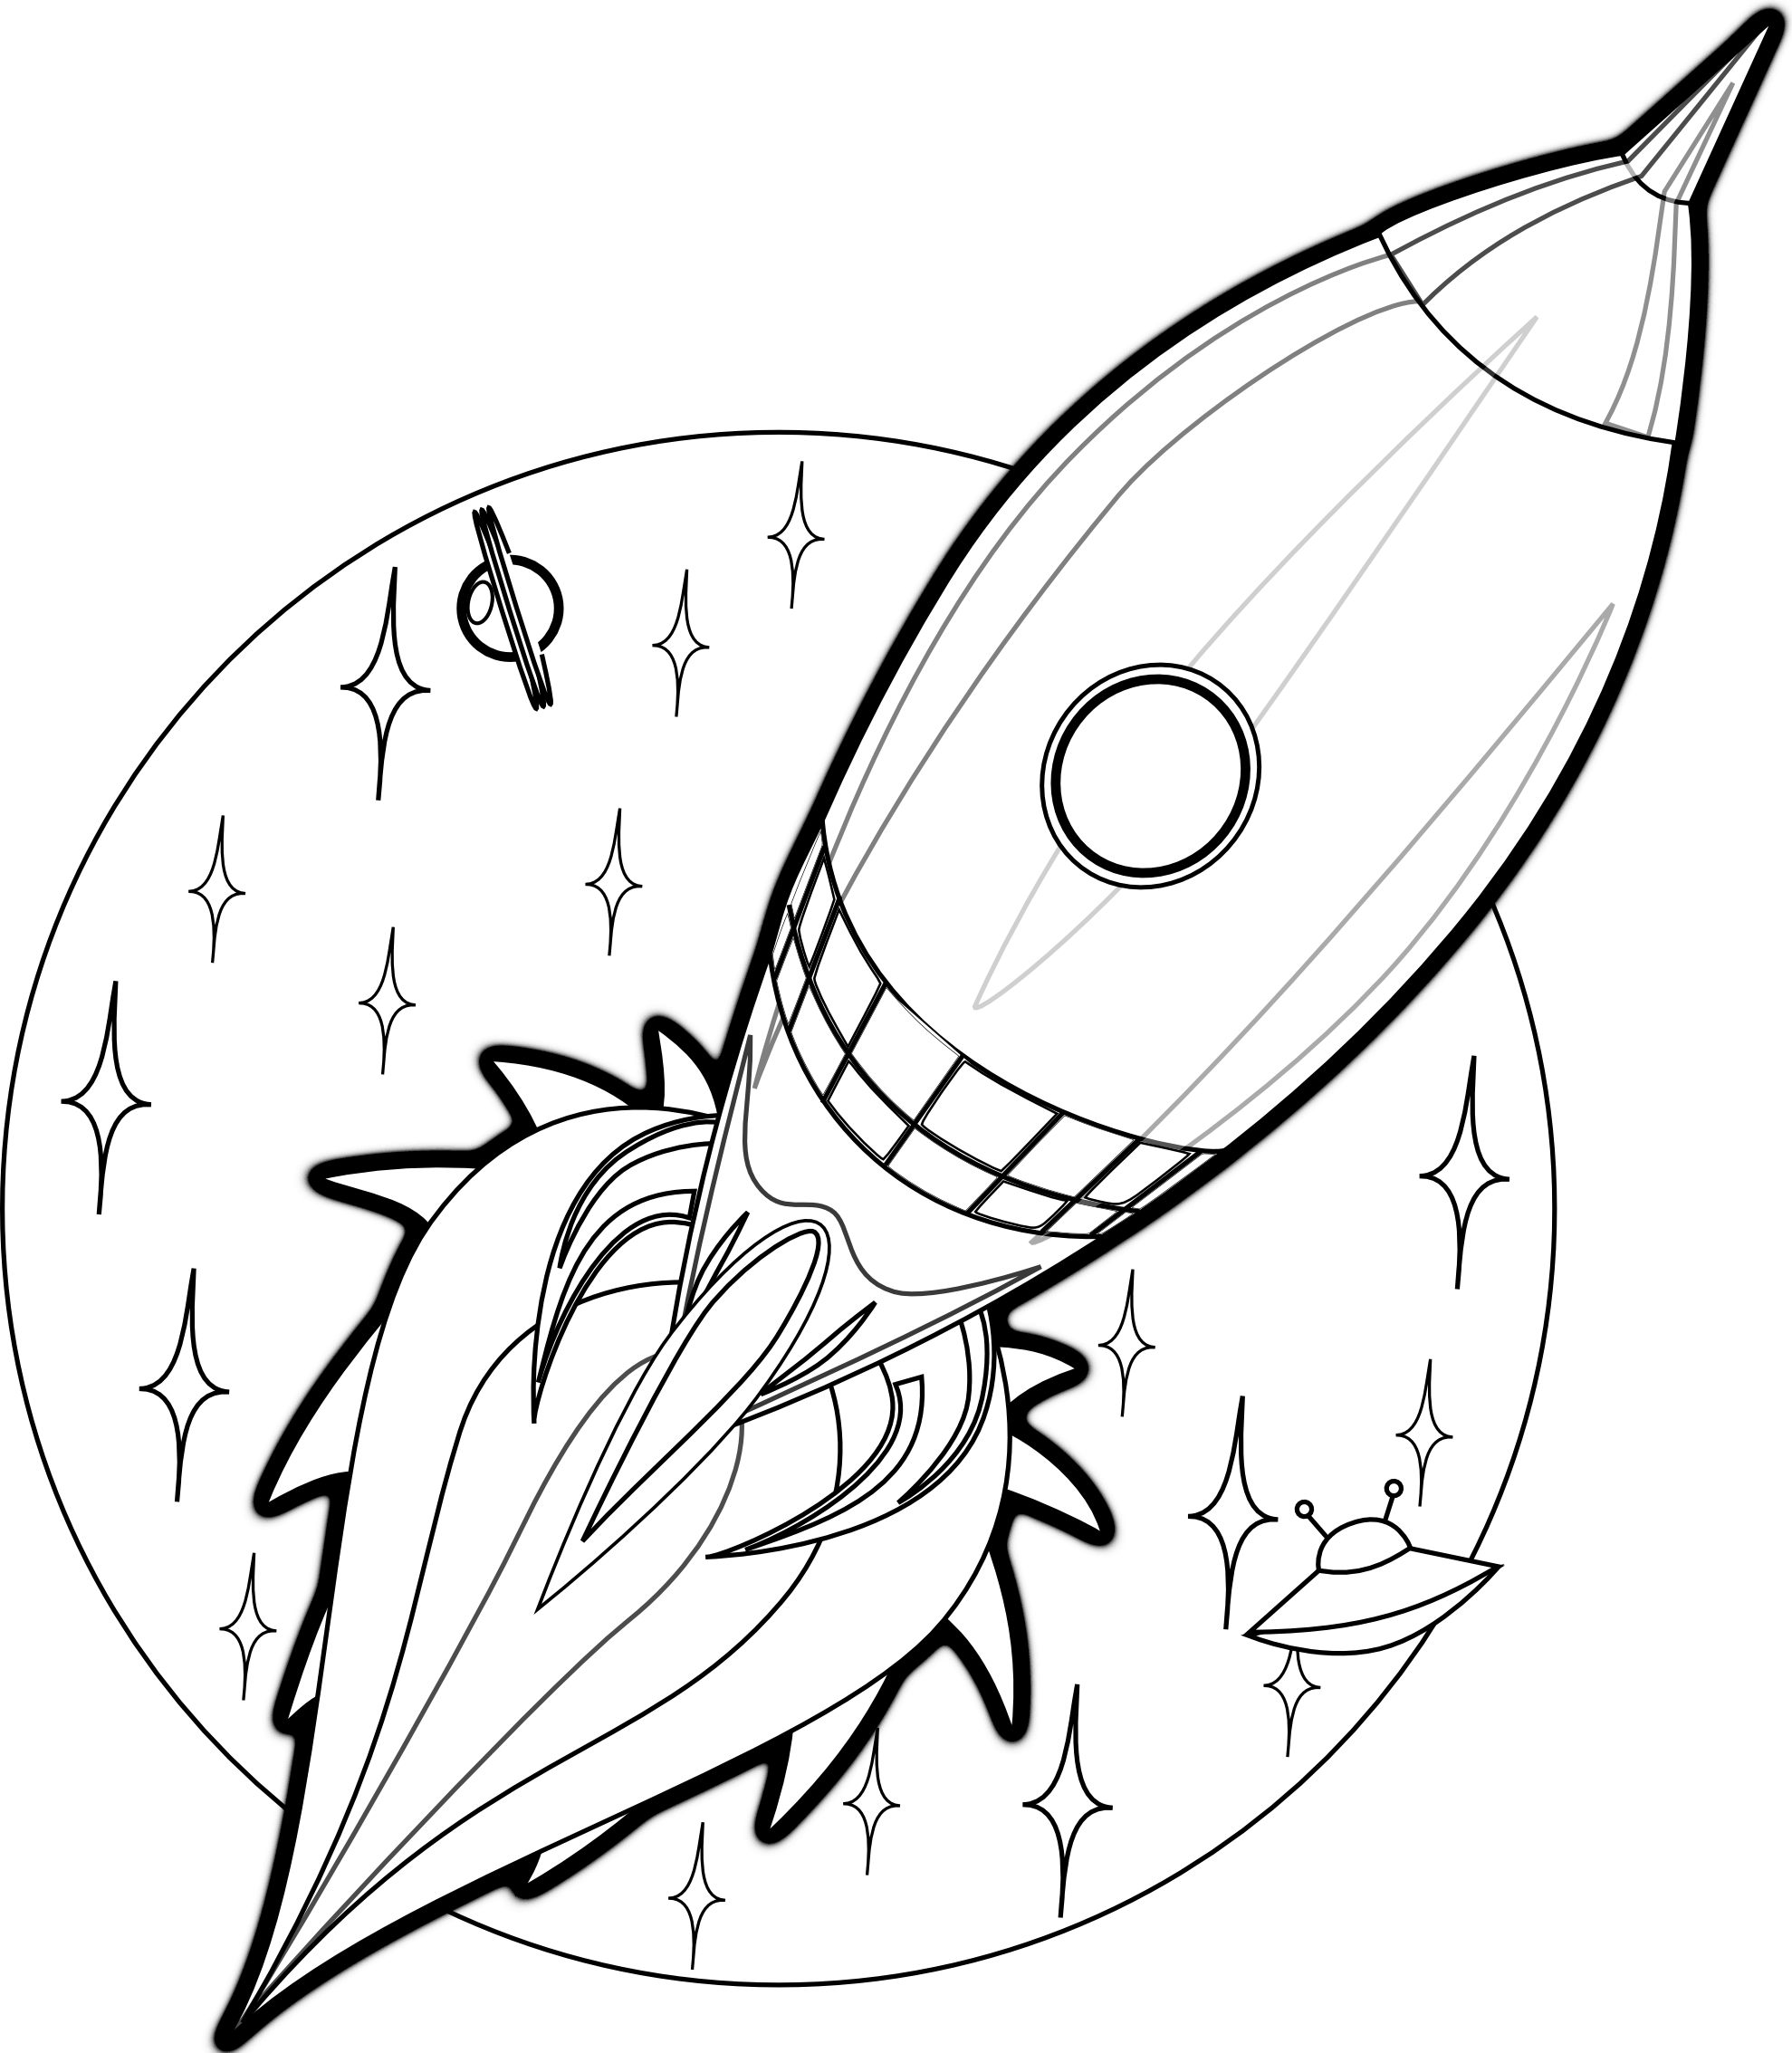 spaceship for coloring spaceship coloring pages to download and print for free for spaceship coloring